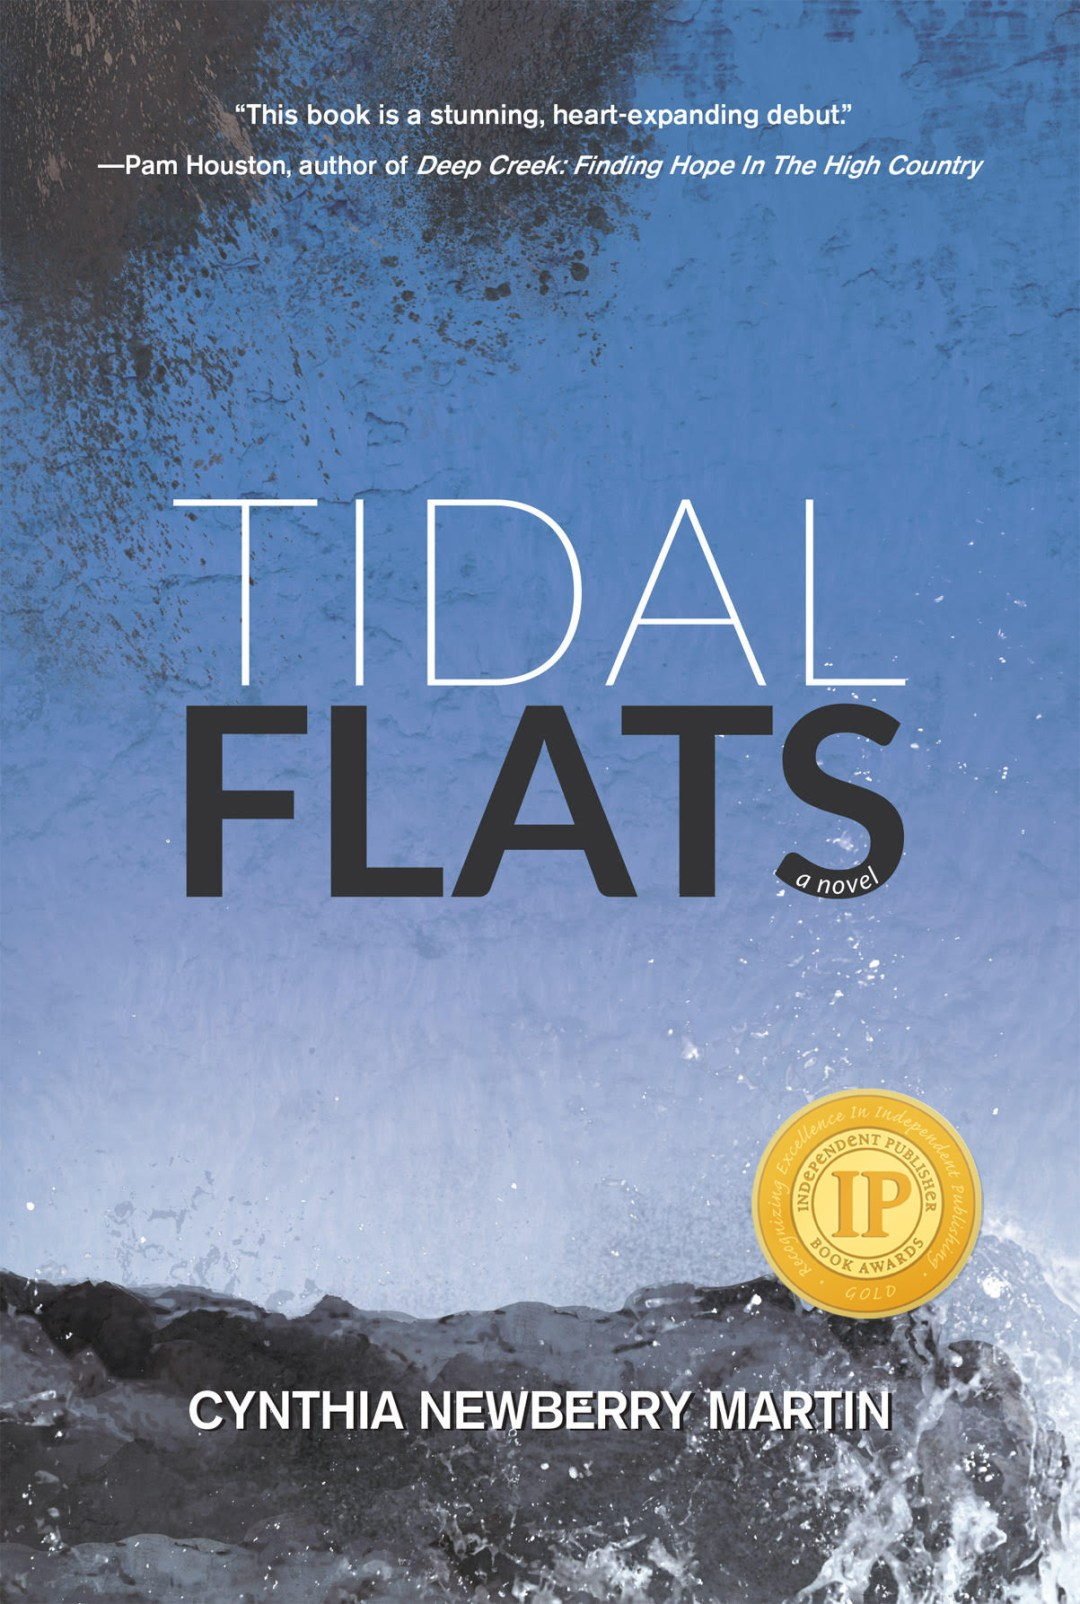 Book cover for Tidal Flats. Blue with dark edges. Title in the middle.